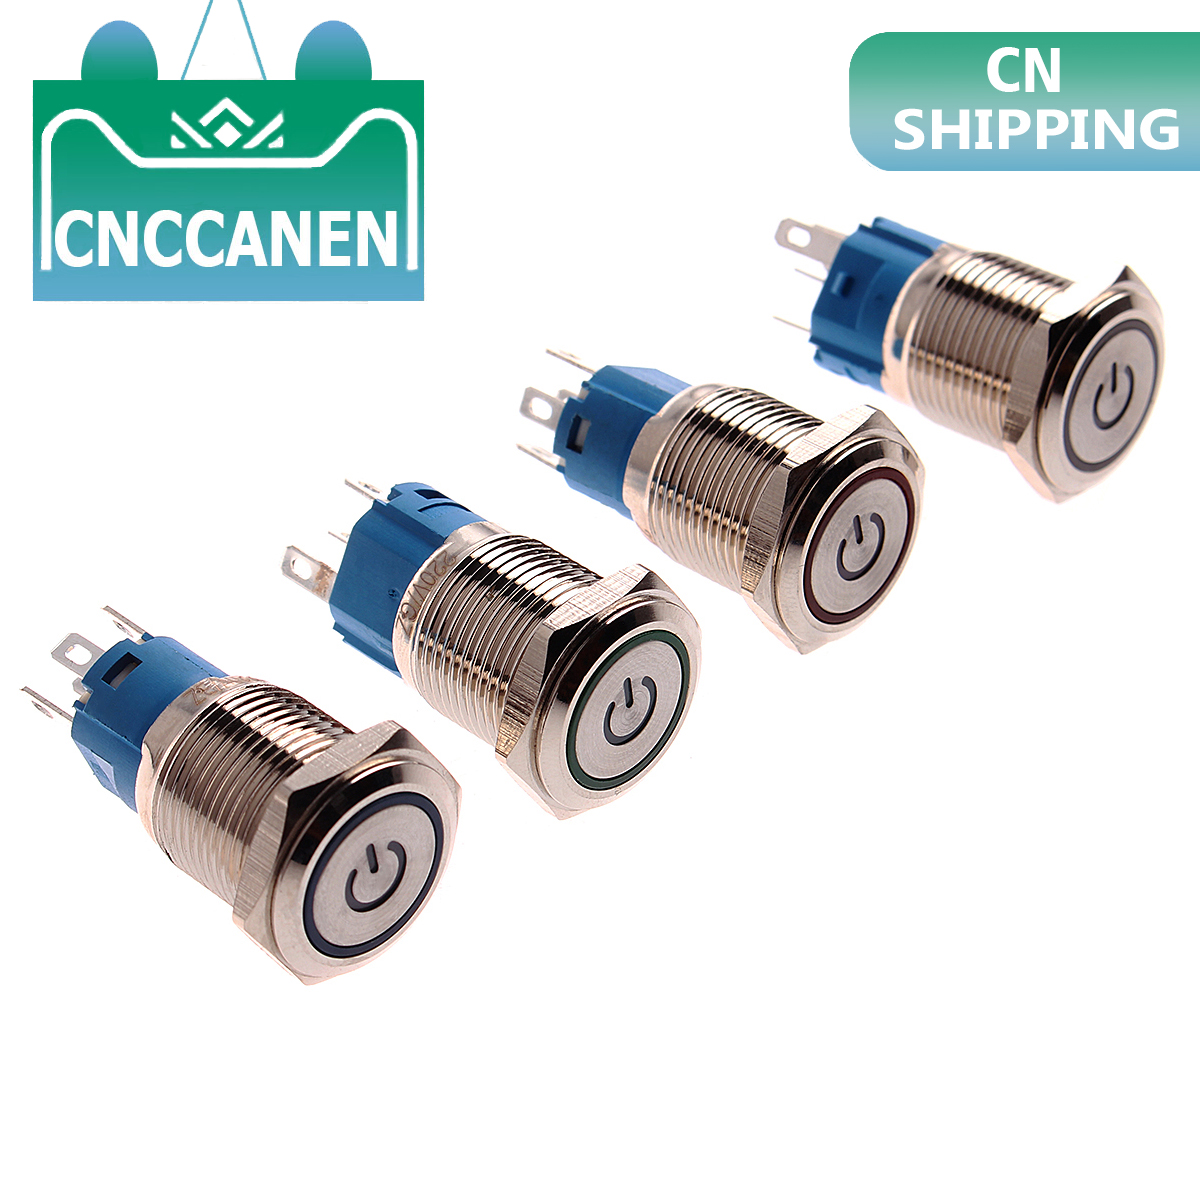 CNCCANEN 12mm Momentary Push Button Switch 1NO1NC ON//Off Metal Shell with White LED Ring 4 Pin for Car RV Truck Boat Size 3V Latching Blue